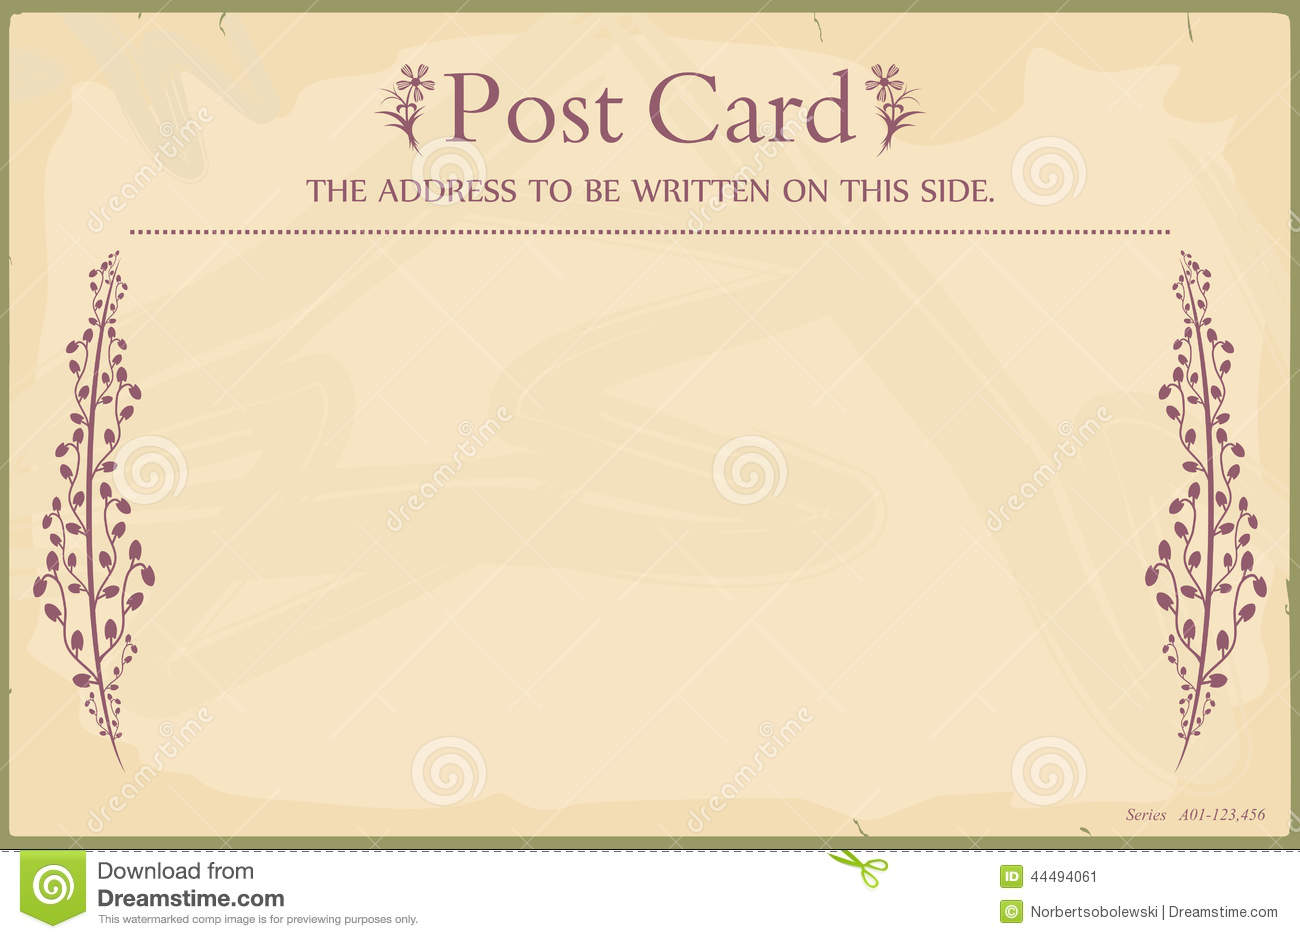 Vintage blank postcard in the style of the early 20th century. Standard size  aspect ratio. Vector base to add any text and textures. No gradients.